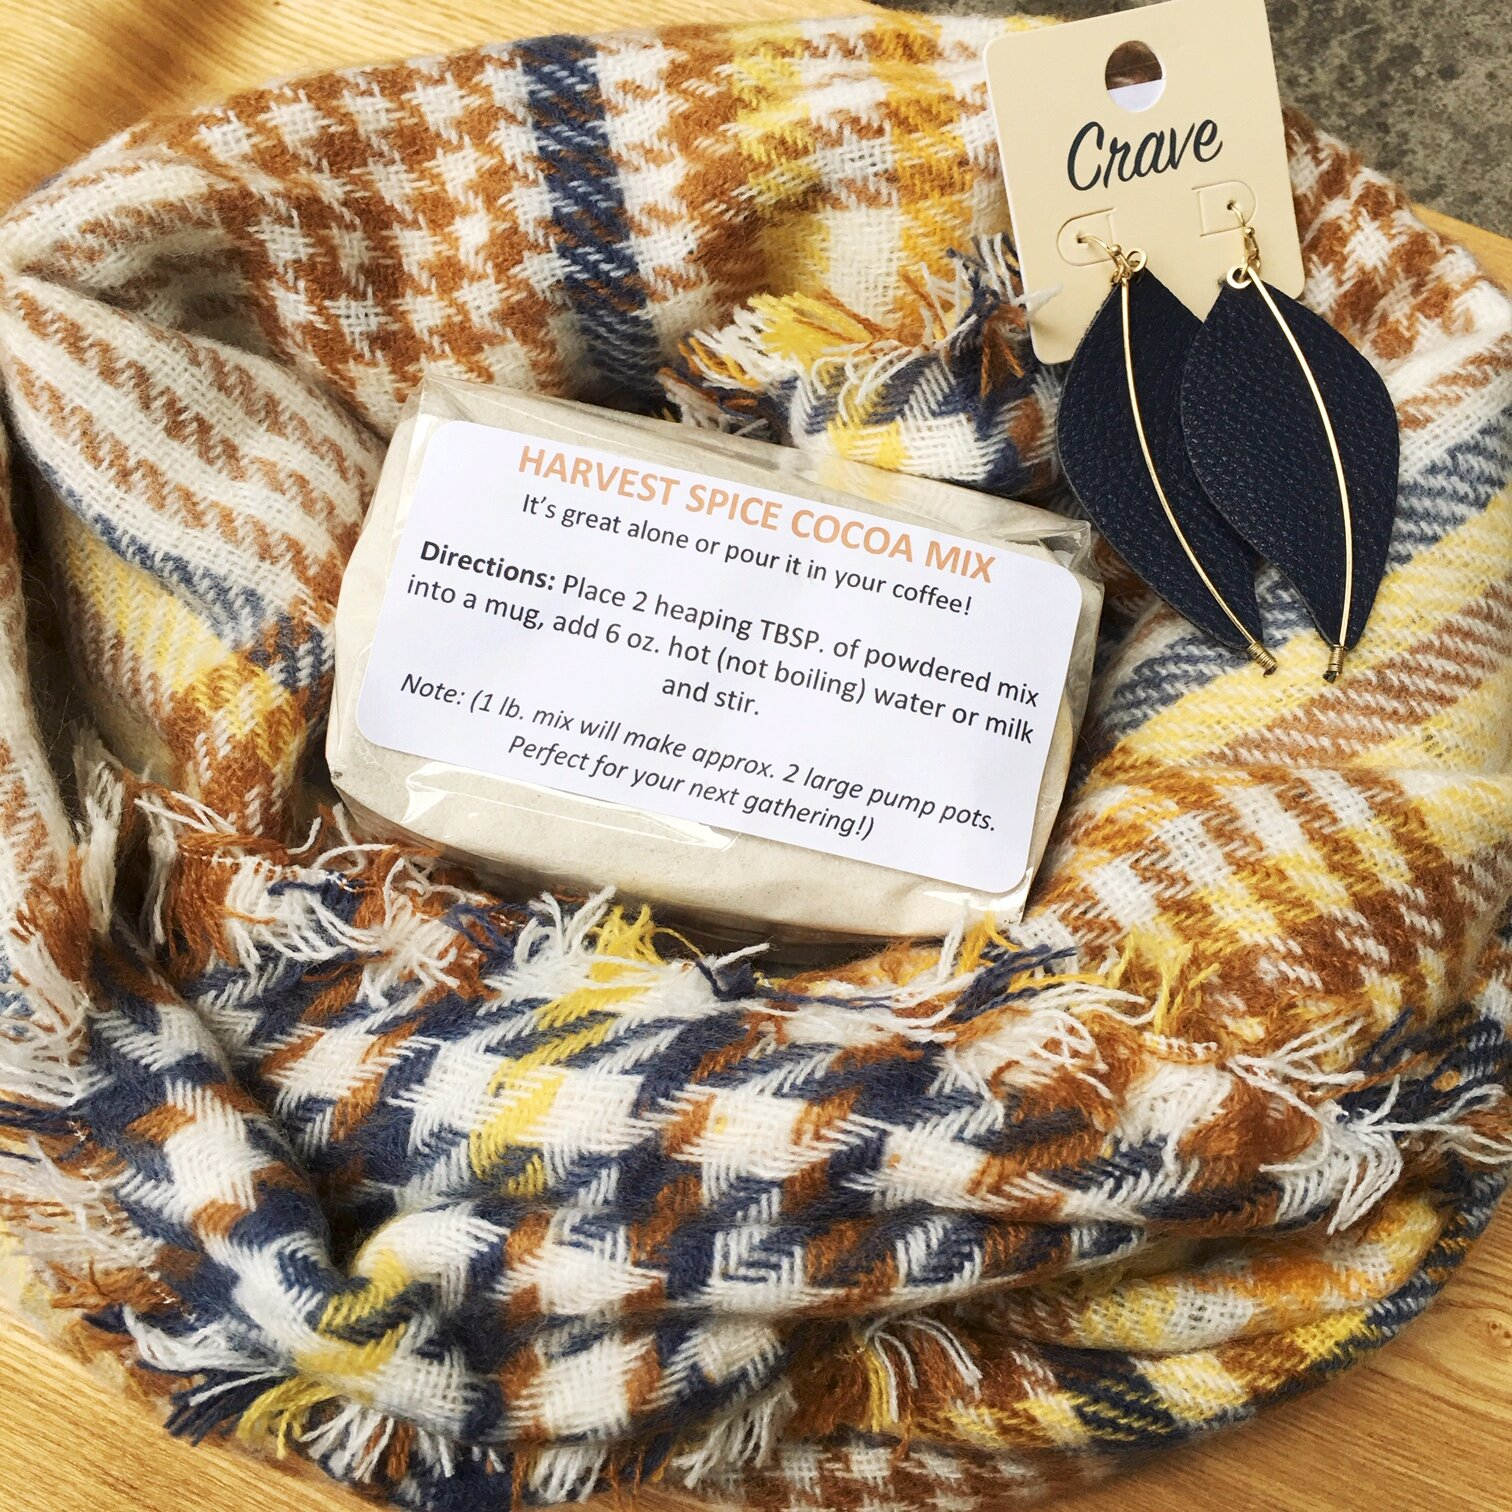 Find this scarf, earring and cocoa giveaway contest on our Facebook page!